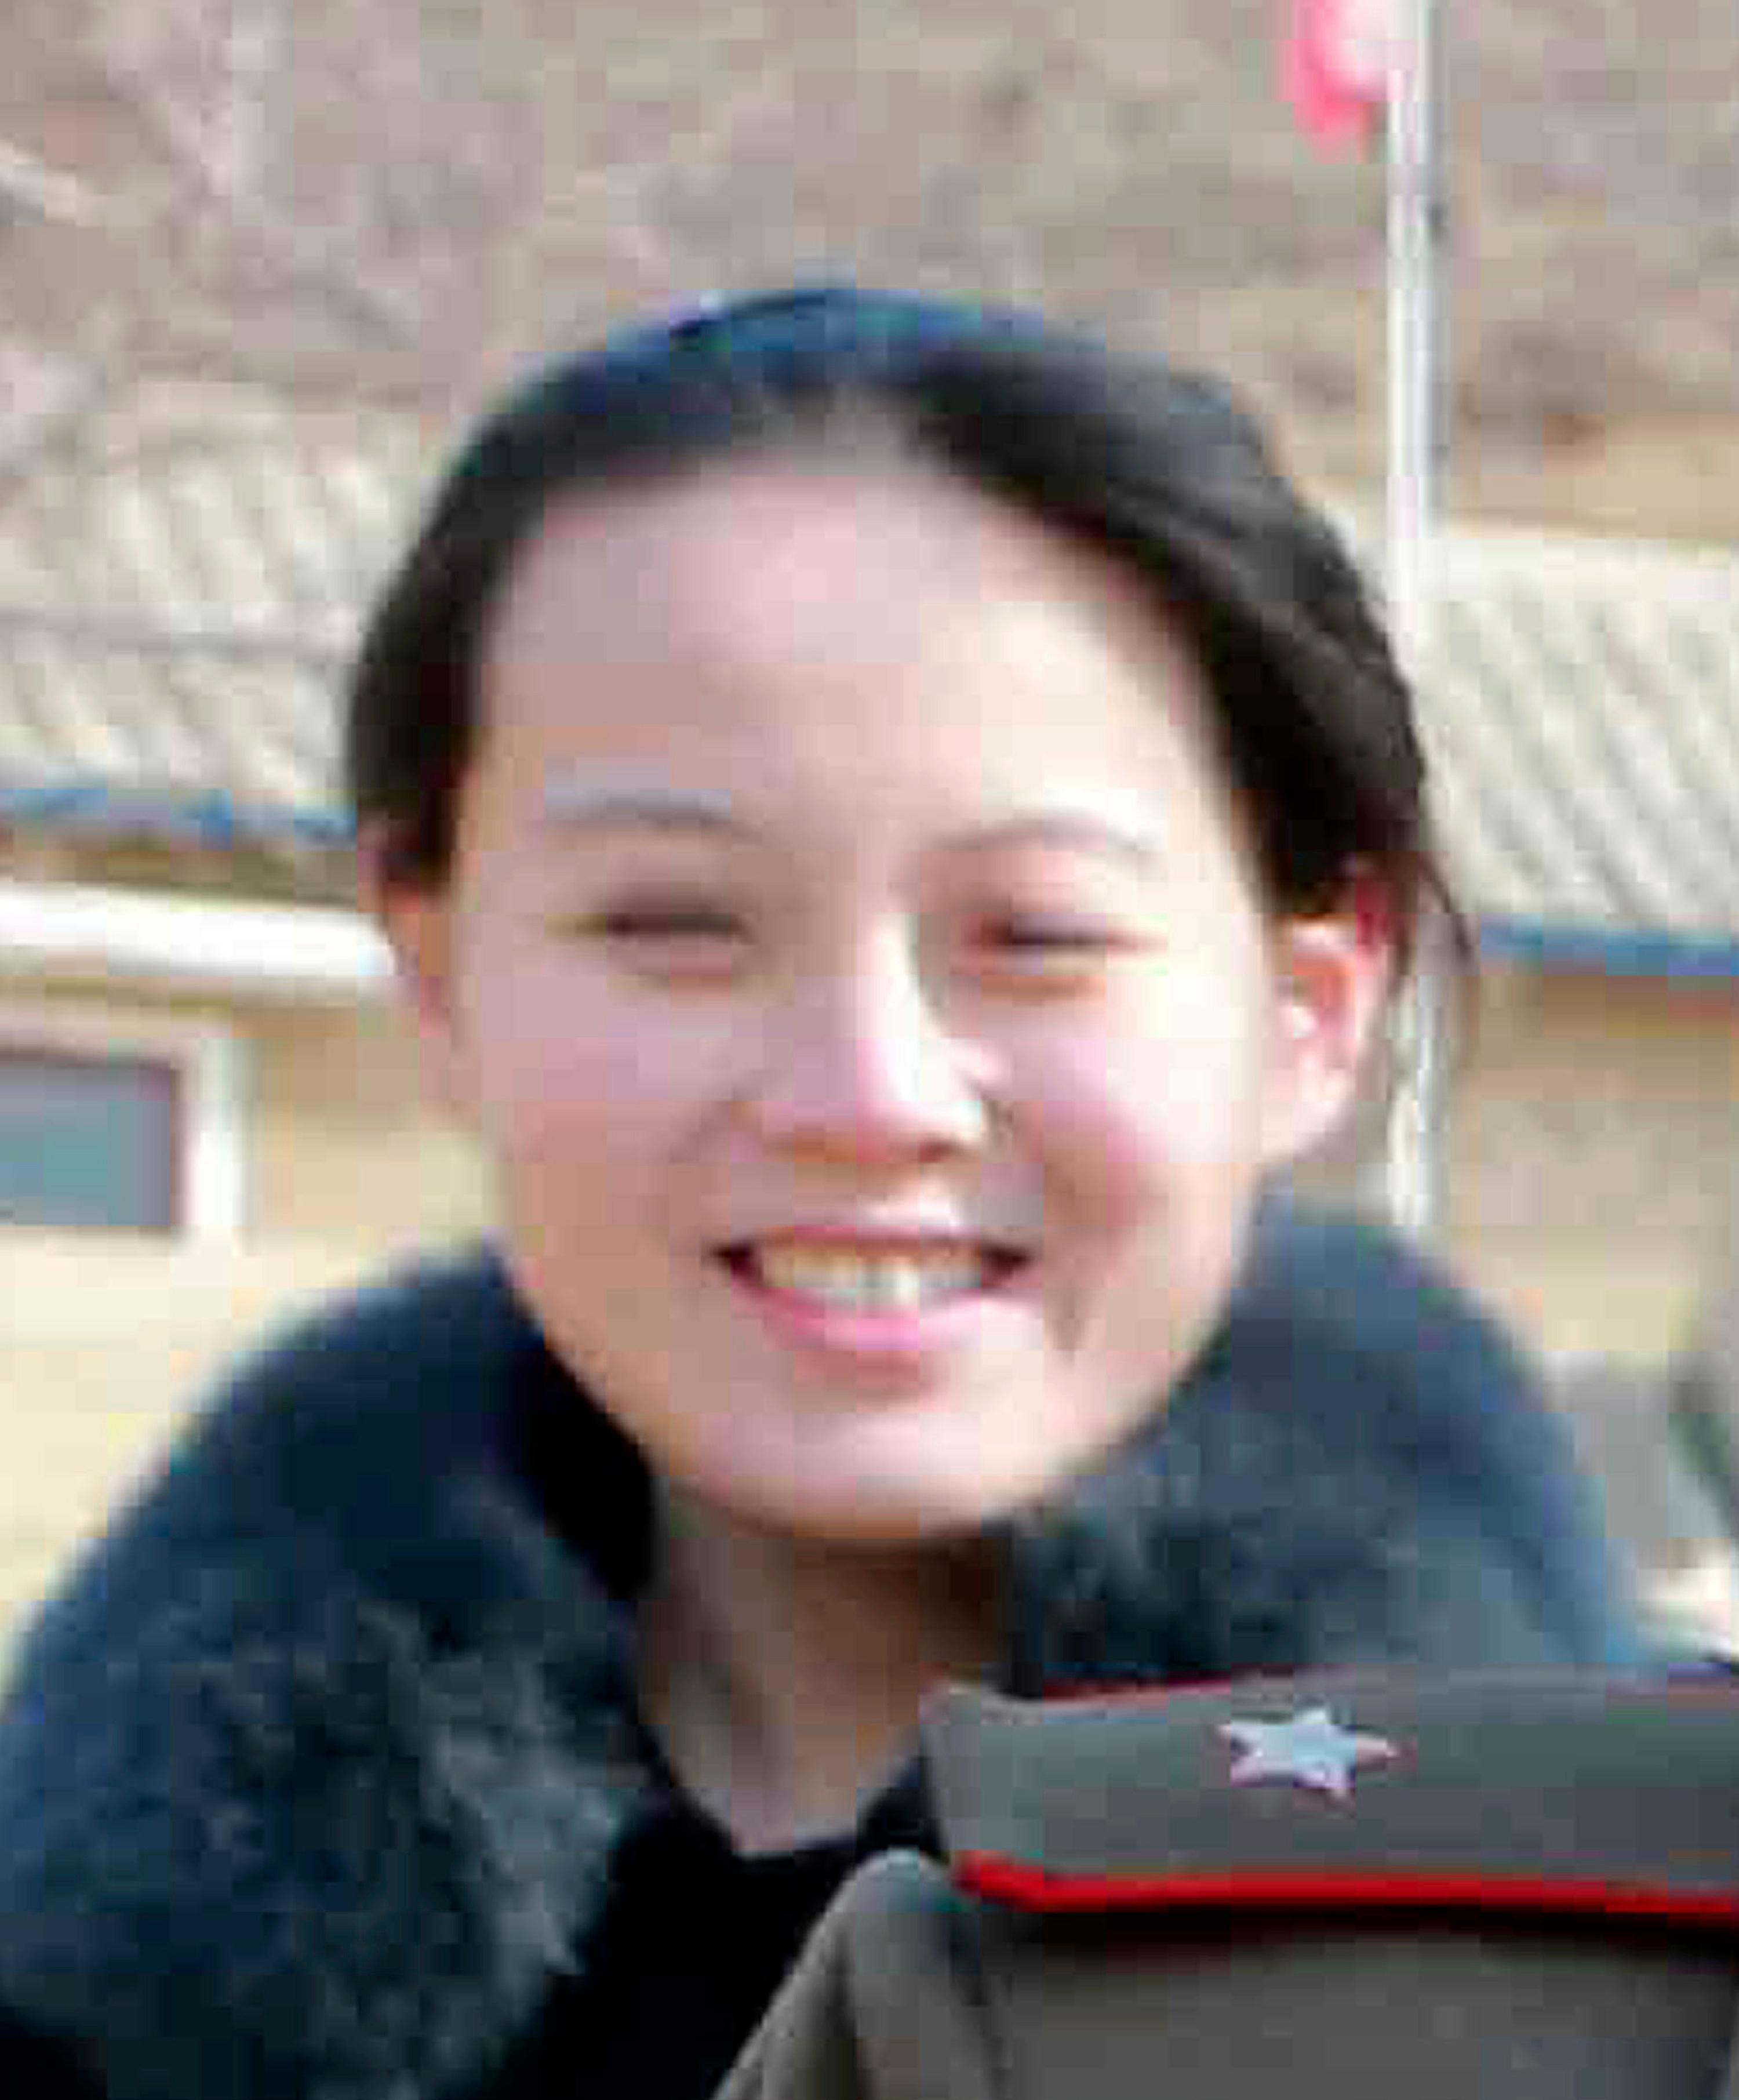 FILE - This 2015, file photo provided by the North Korean government shows Kim Yo Jong, sister of North Korean leader Kim Jong Un, in North Korea. Independent journalists were not given access to cover the event depicted in this image distributed by the North Korean government. South Korea's Unification Ministry said North Korea informed Wednesday, Feb. 7, 2018, that Kim Yo Jong would be part of the high-level delegation coming to the South for the Pyeongchang Winter Olympics. Independent journalists were not given access to cover the event depicted in this image distributed by the North Korean government. The content of this image is as provided and cannot be independently verified. (Korean Central News Agency/Korea News Service via AP, File)